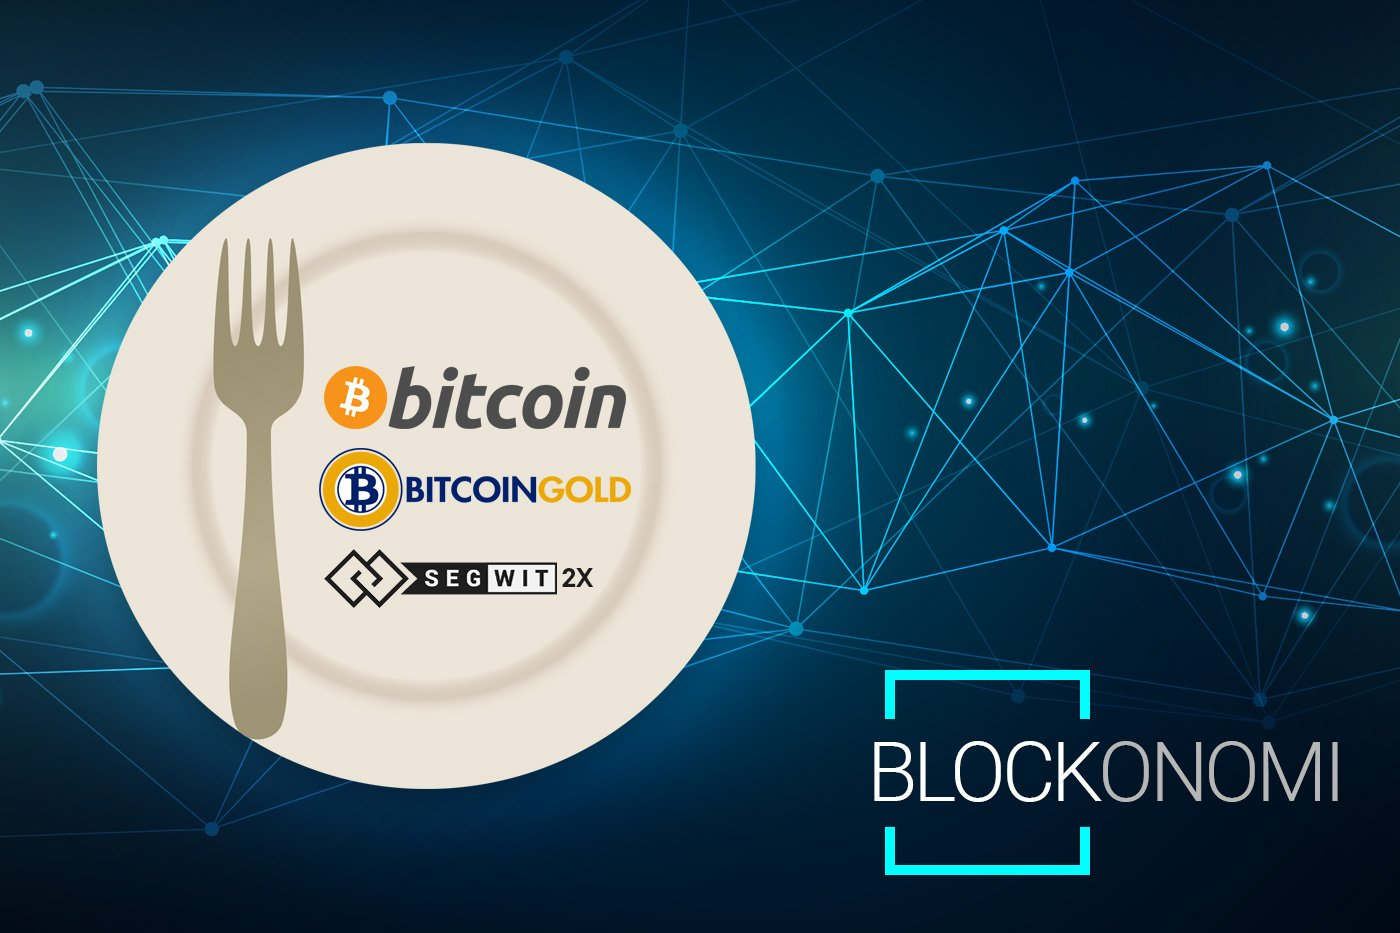 Bitcoin hard forks bitcoin gold segwit2x what you need to know bitcoin hard fork ccuart Images